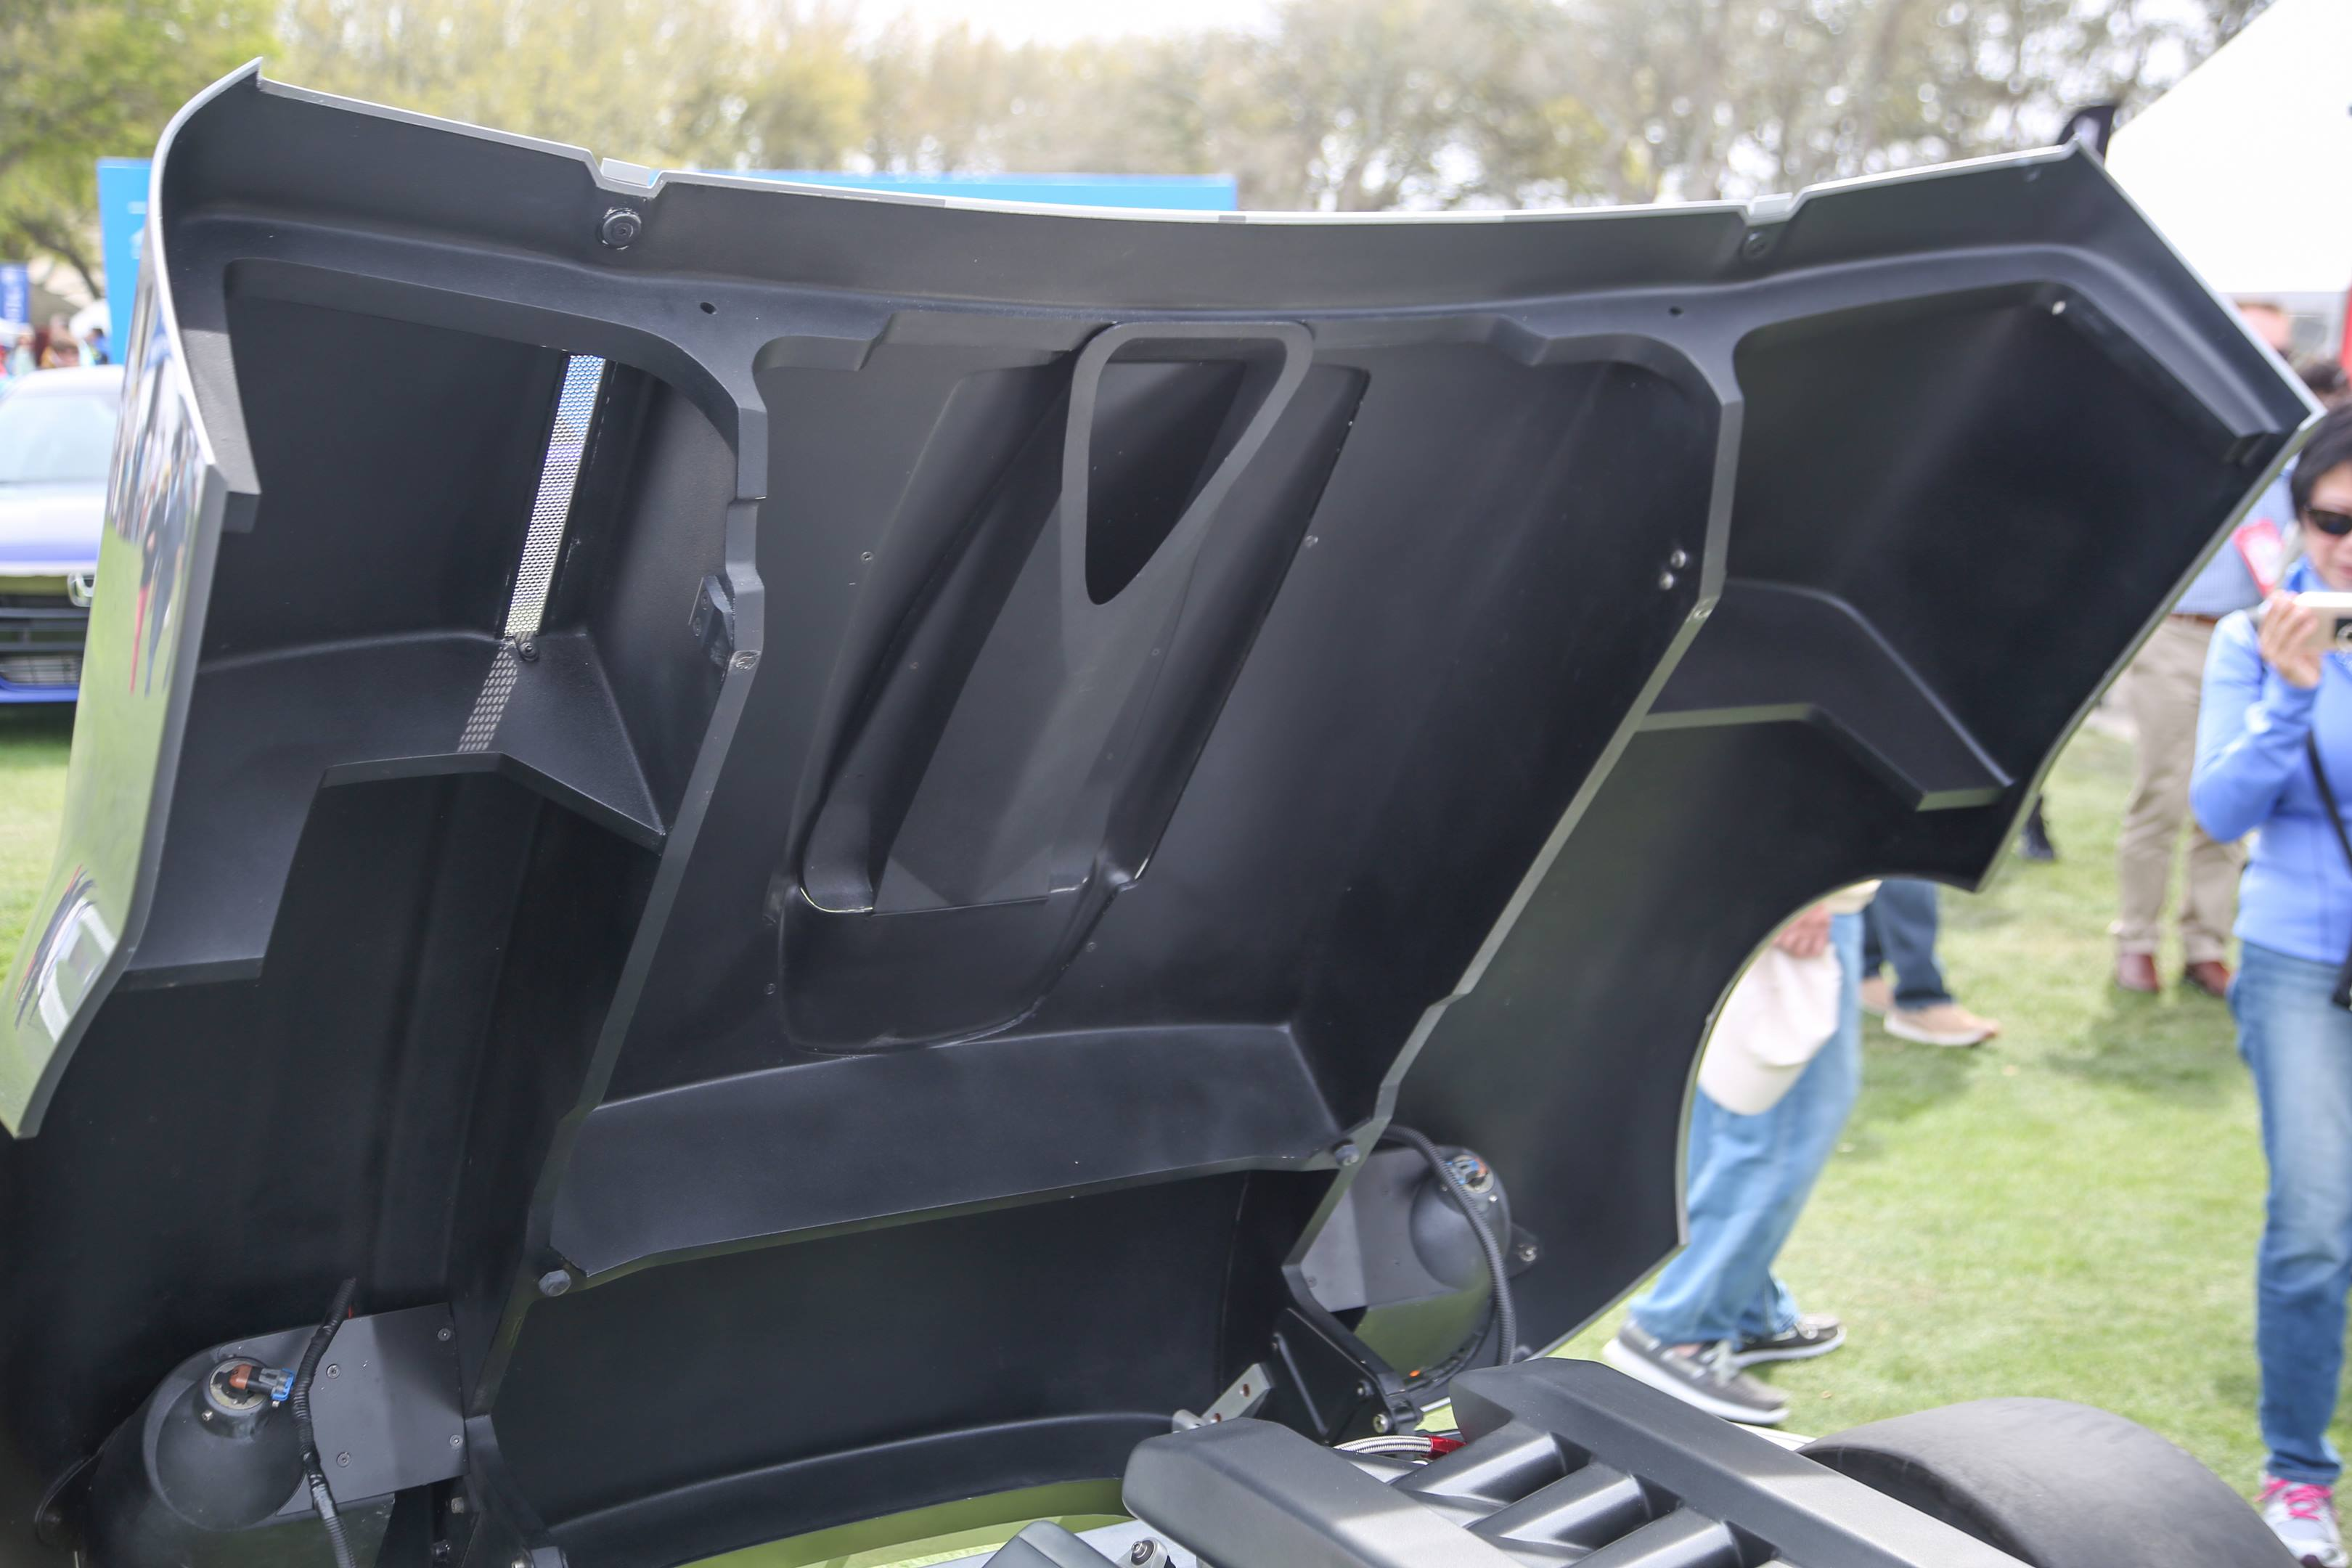 The body is mostly fiberglass, with some carbon fiber, built with a foam core.